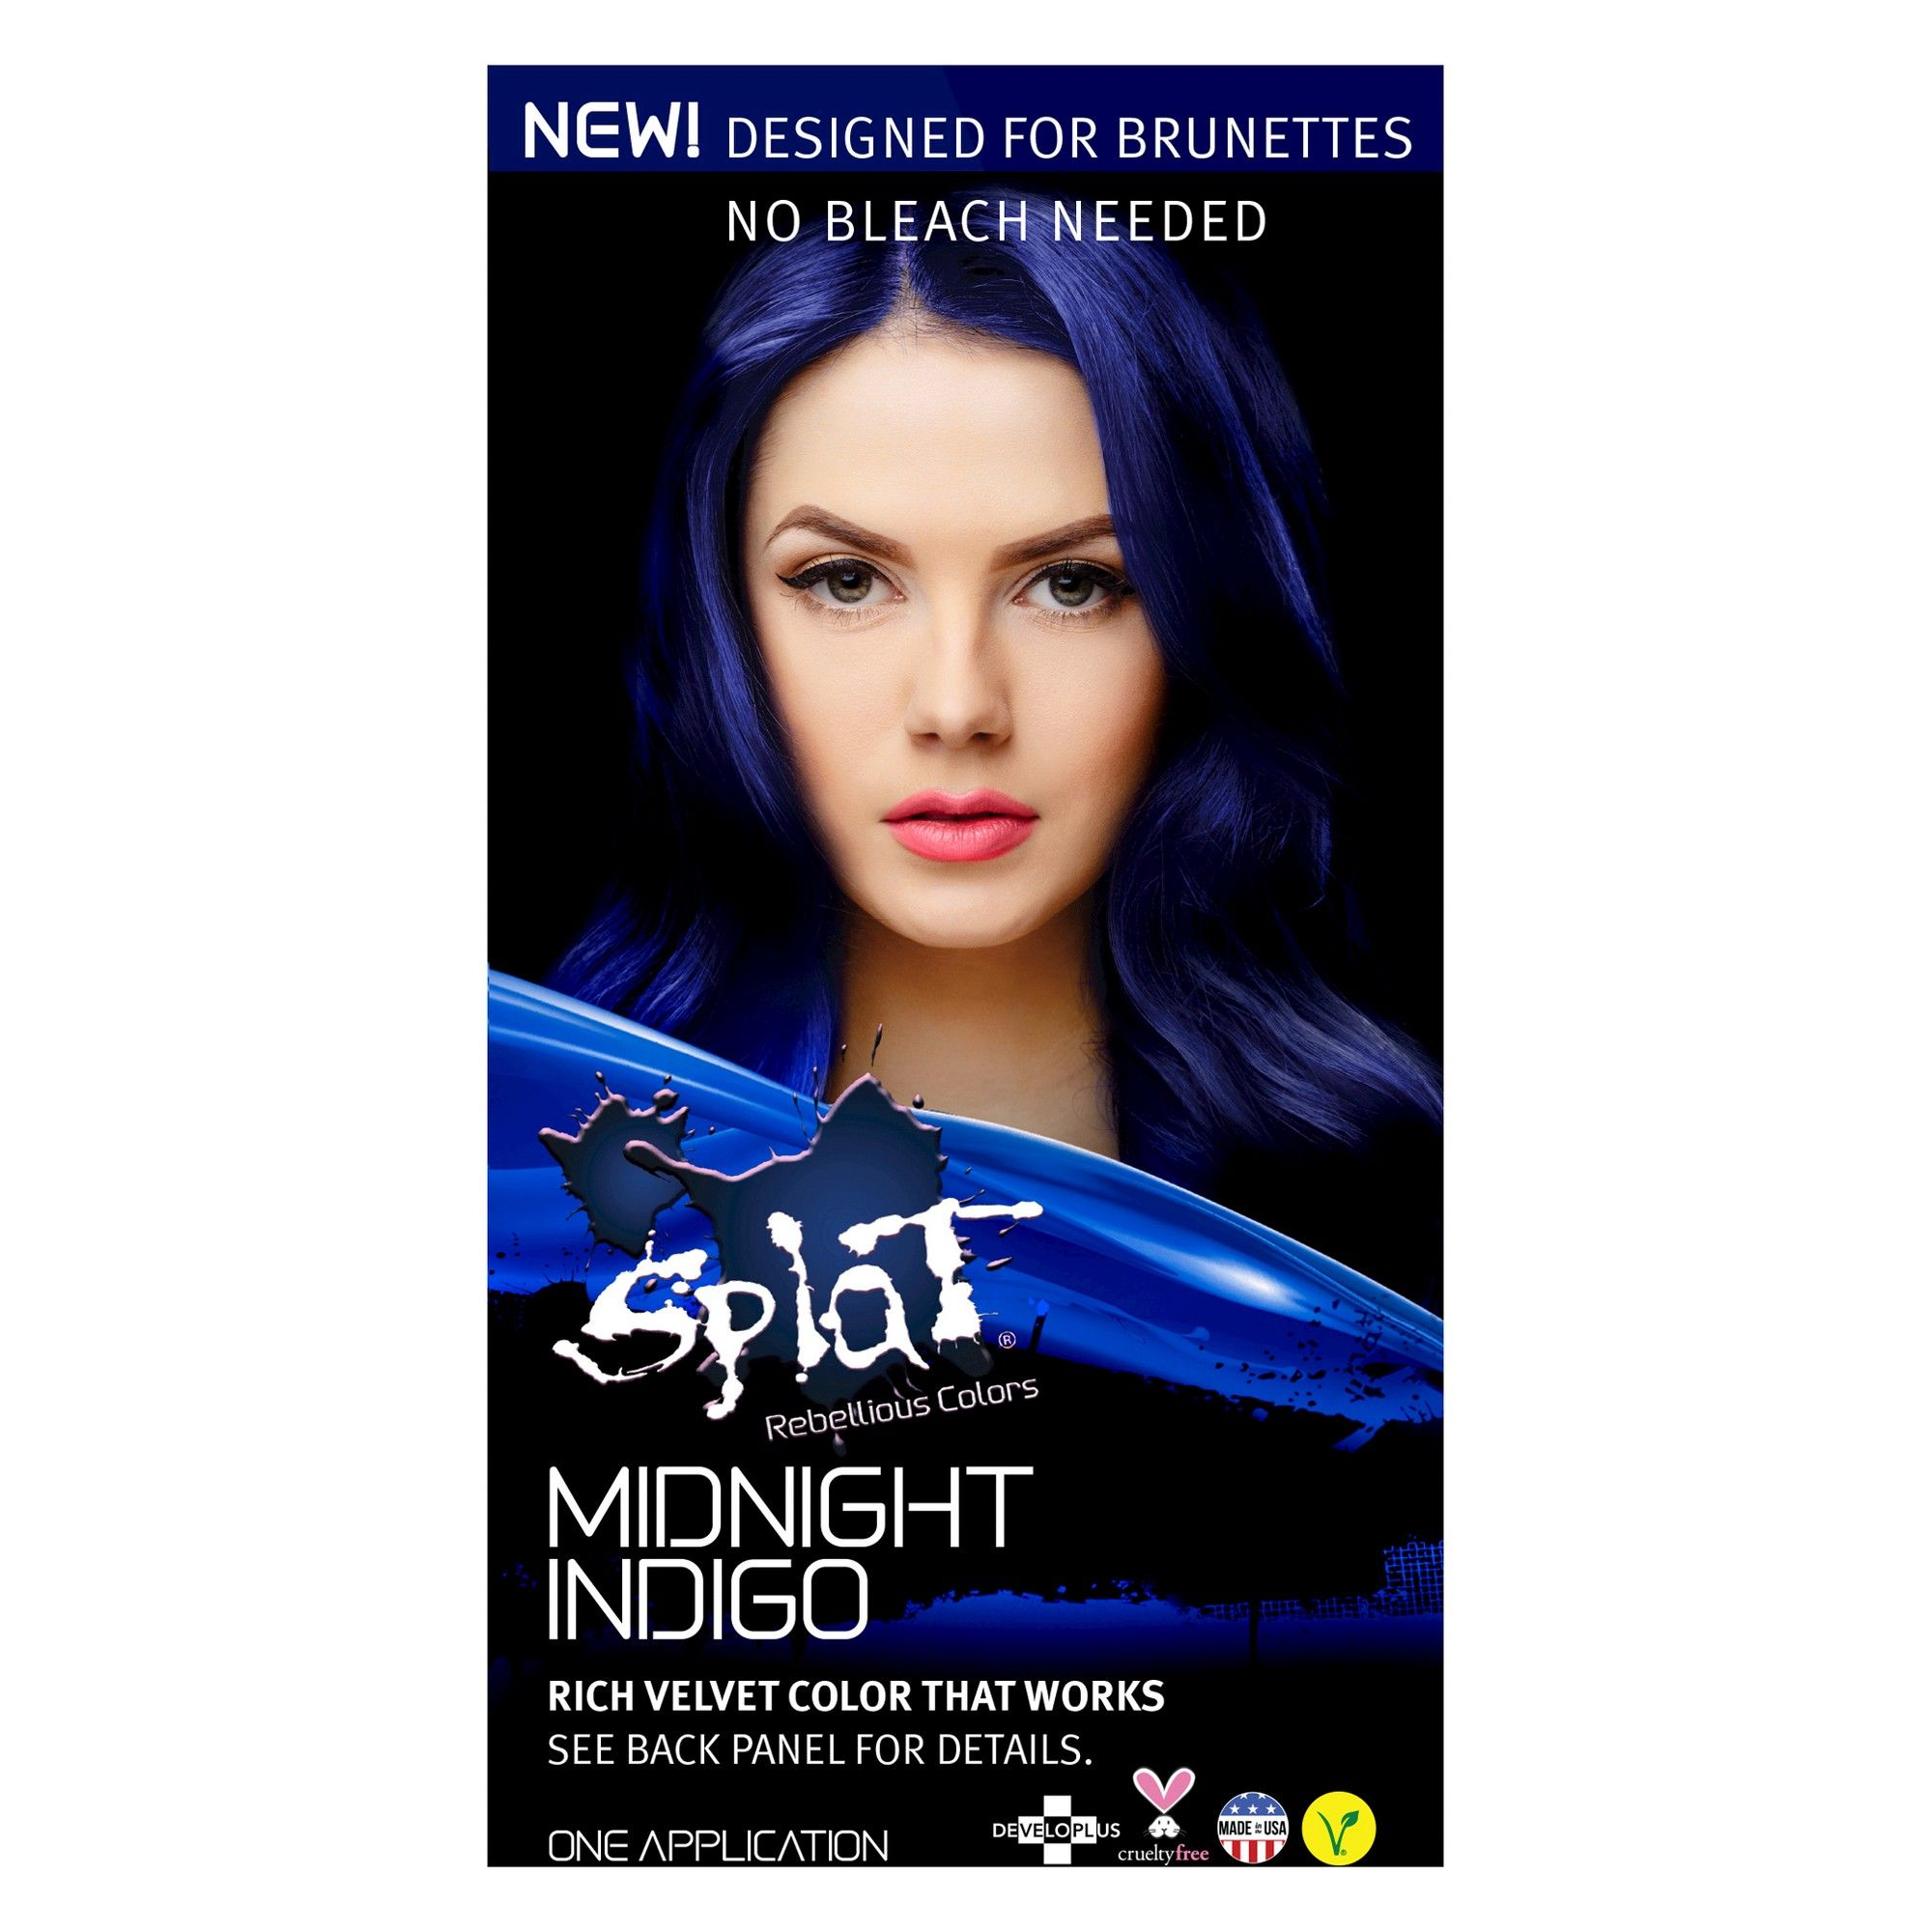 Splat Midnight Hair Color Indigo 6 0 Fl Oz In 2020 Splat Midnight Hair Color Midnight Hair Splat Midnight